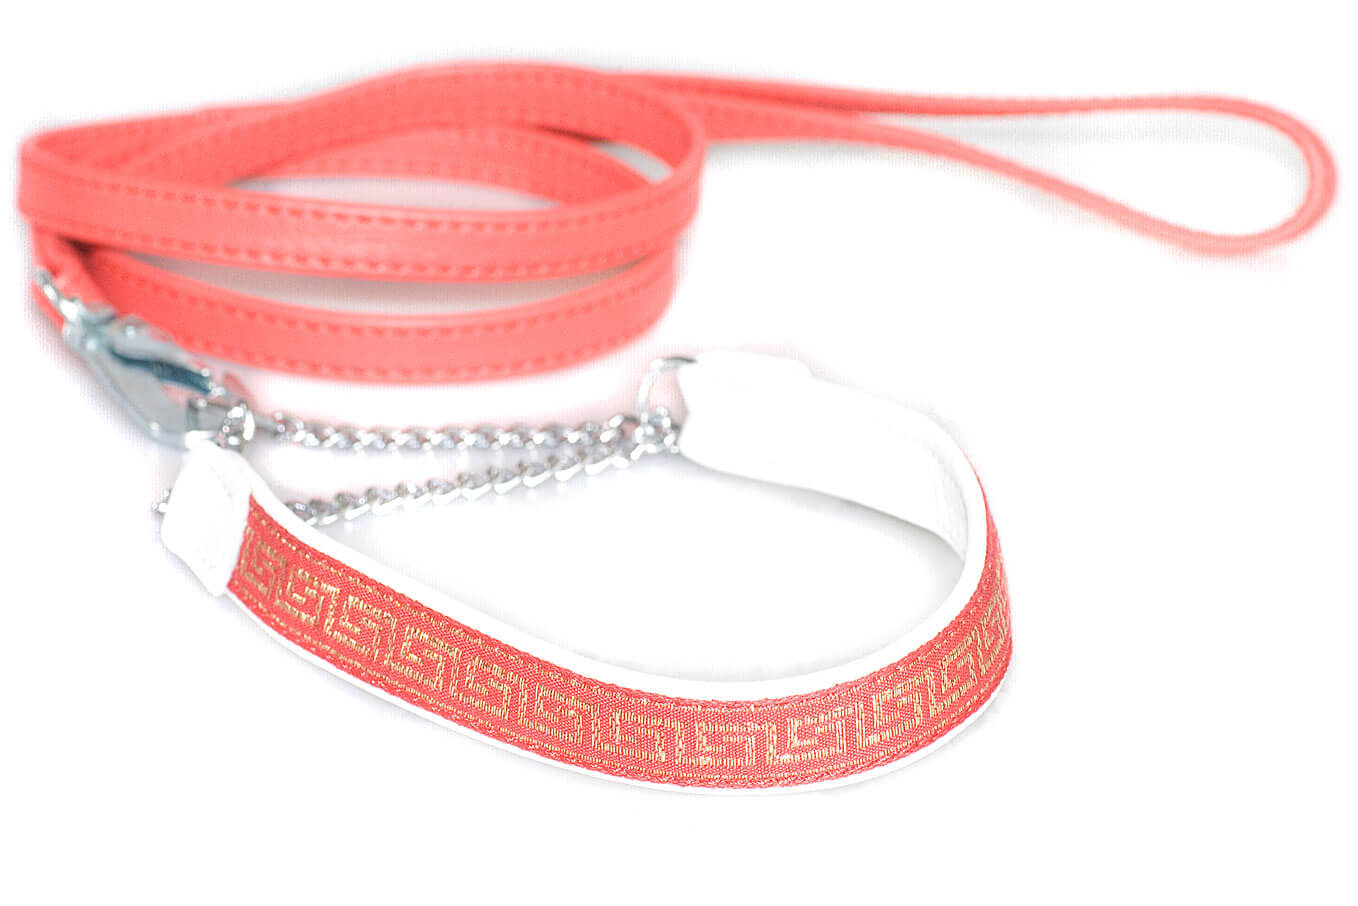 Red nappa leather double stitched lead to match ribbon collars